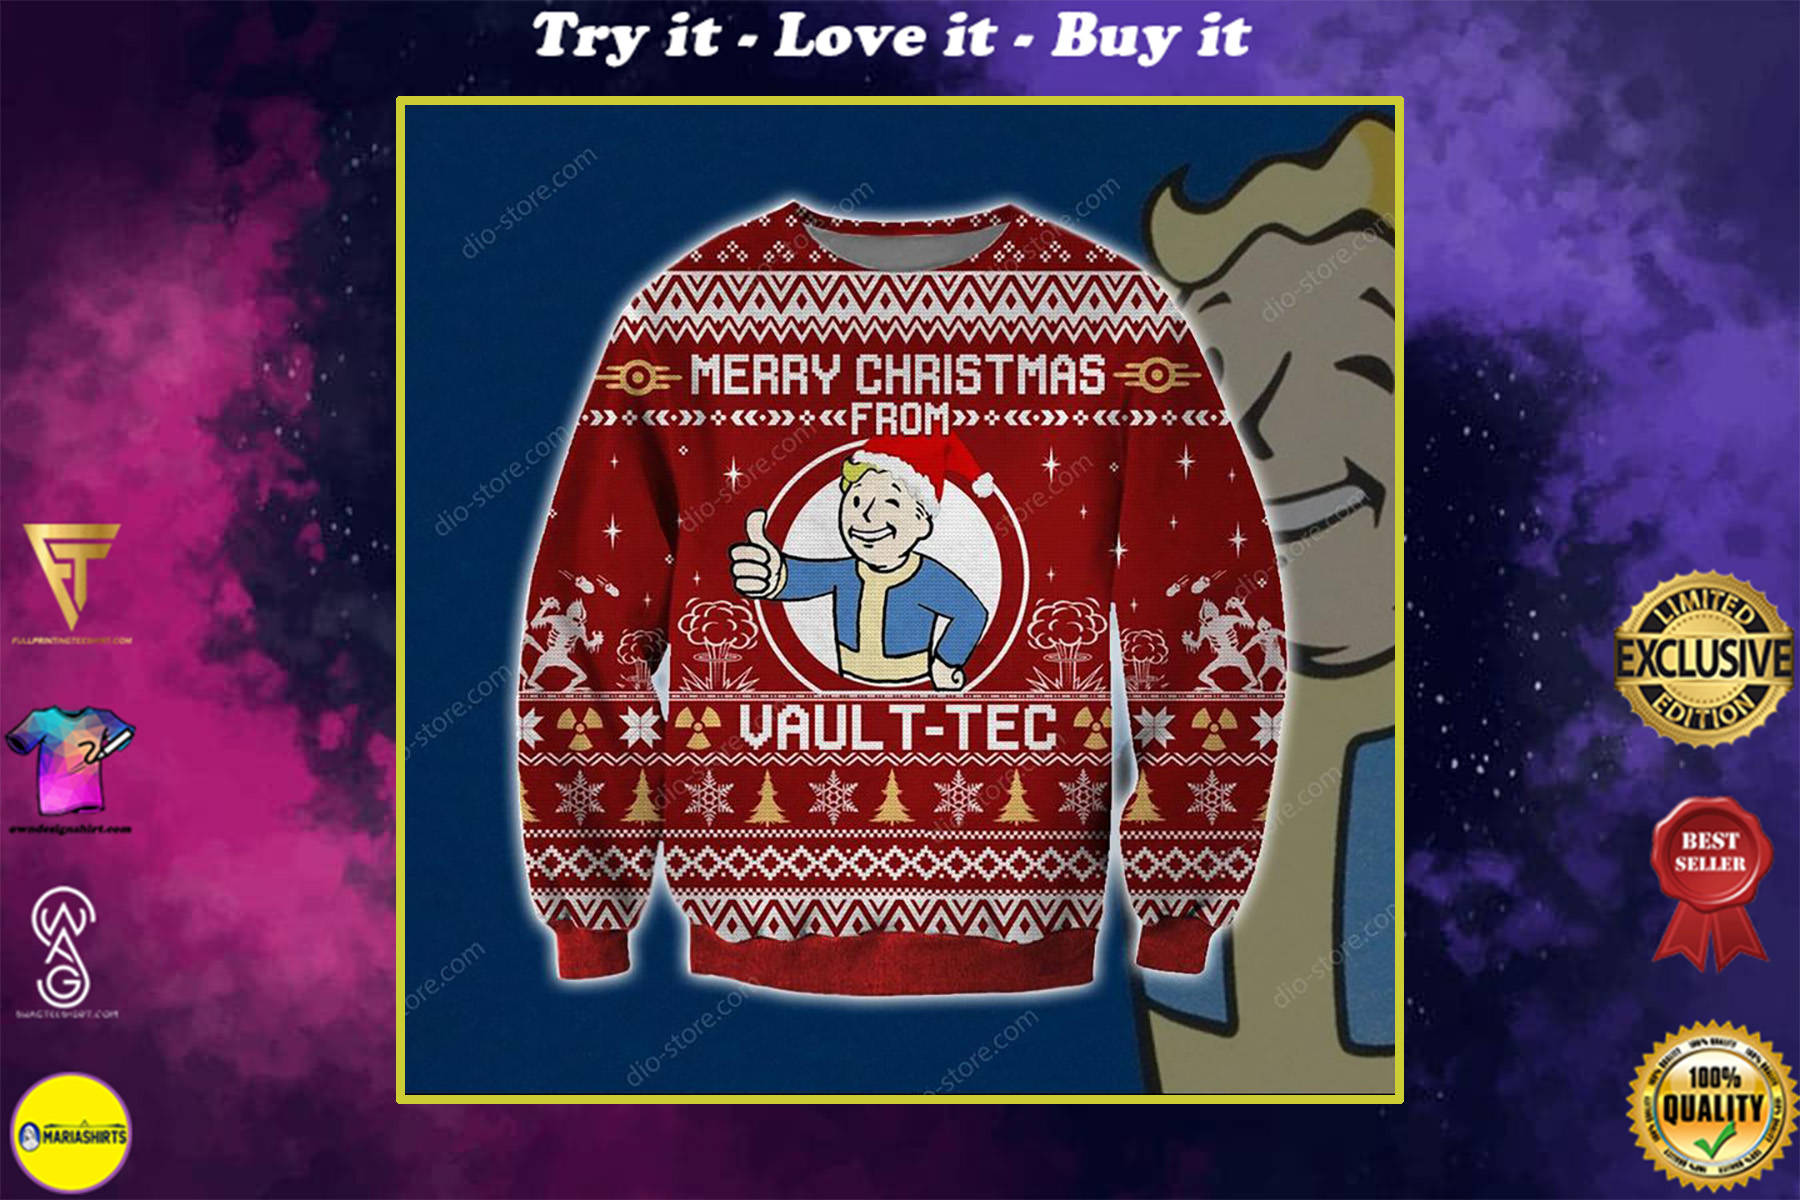 merry christmas from vault-tec all over printed ugly christmas sweater